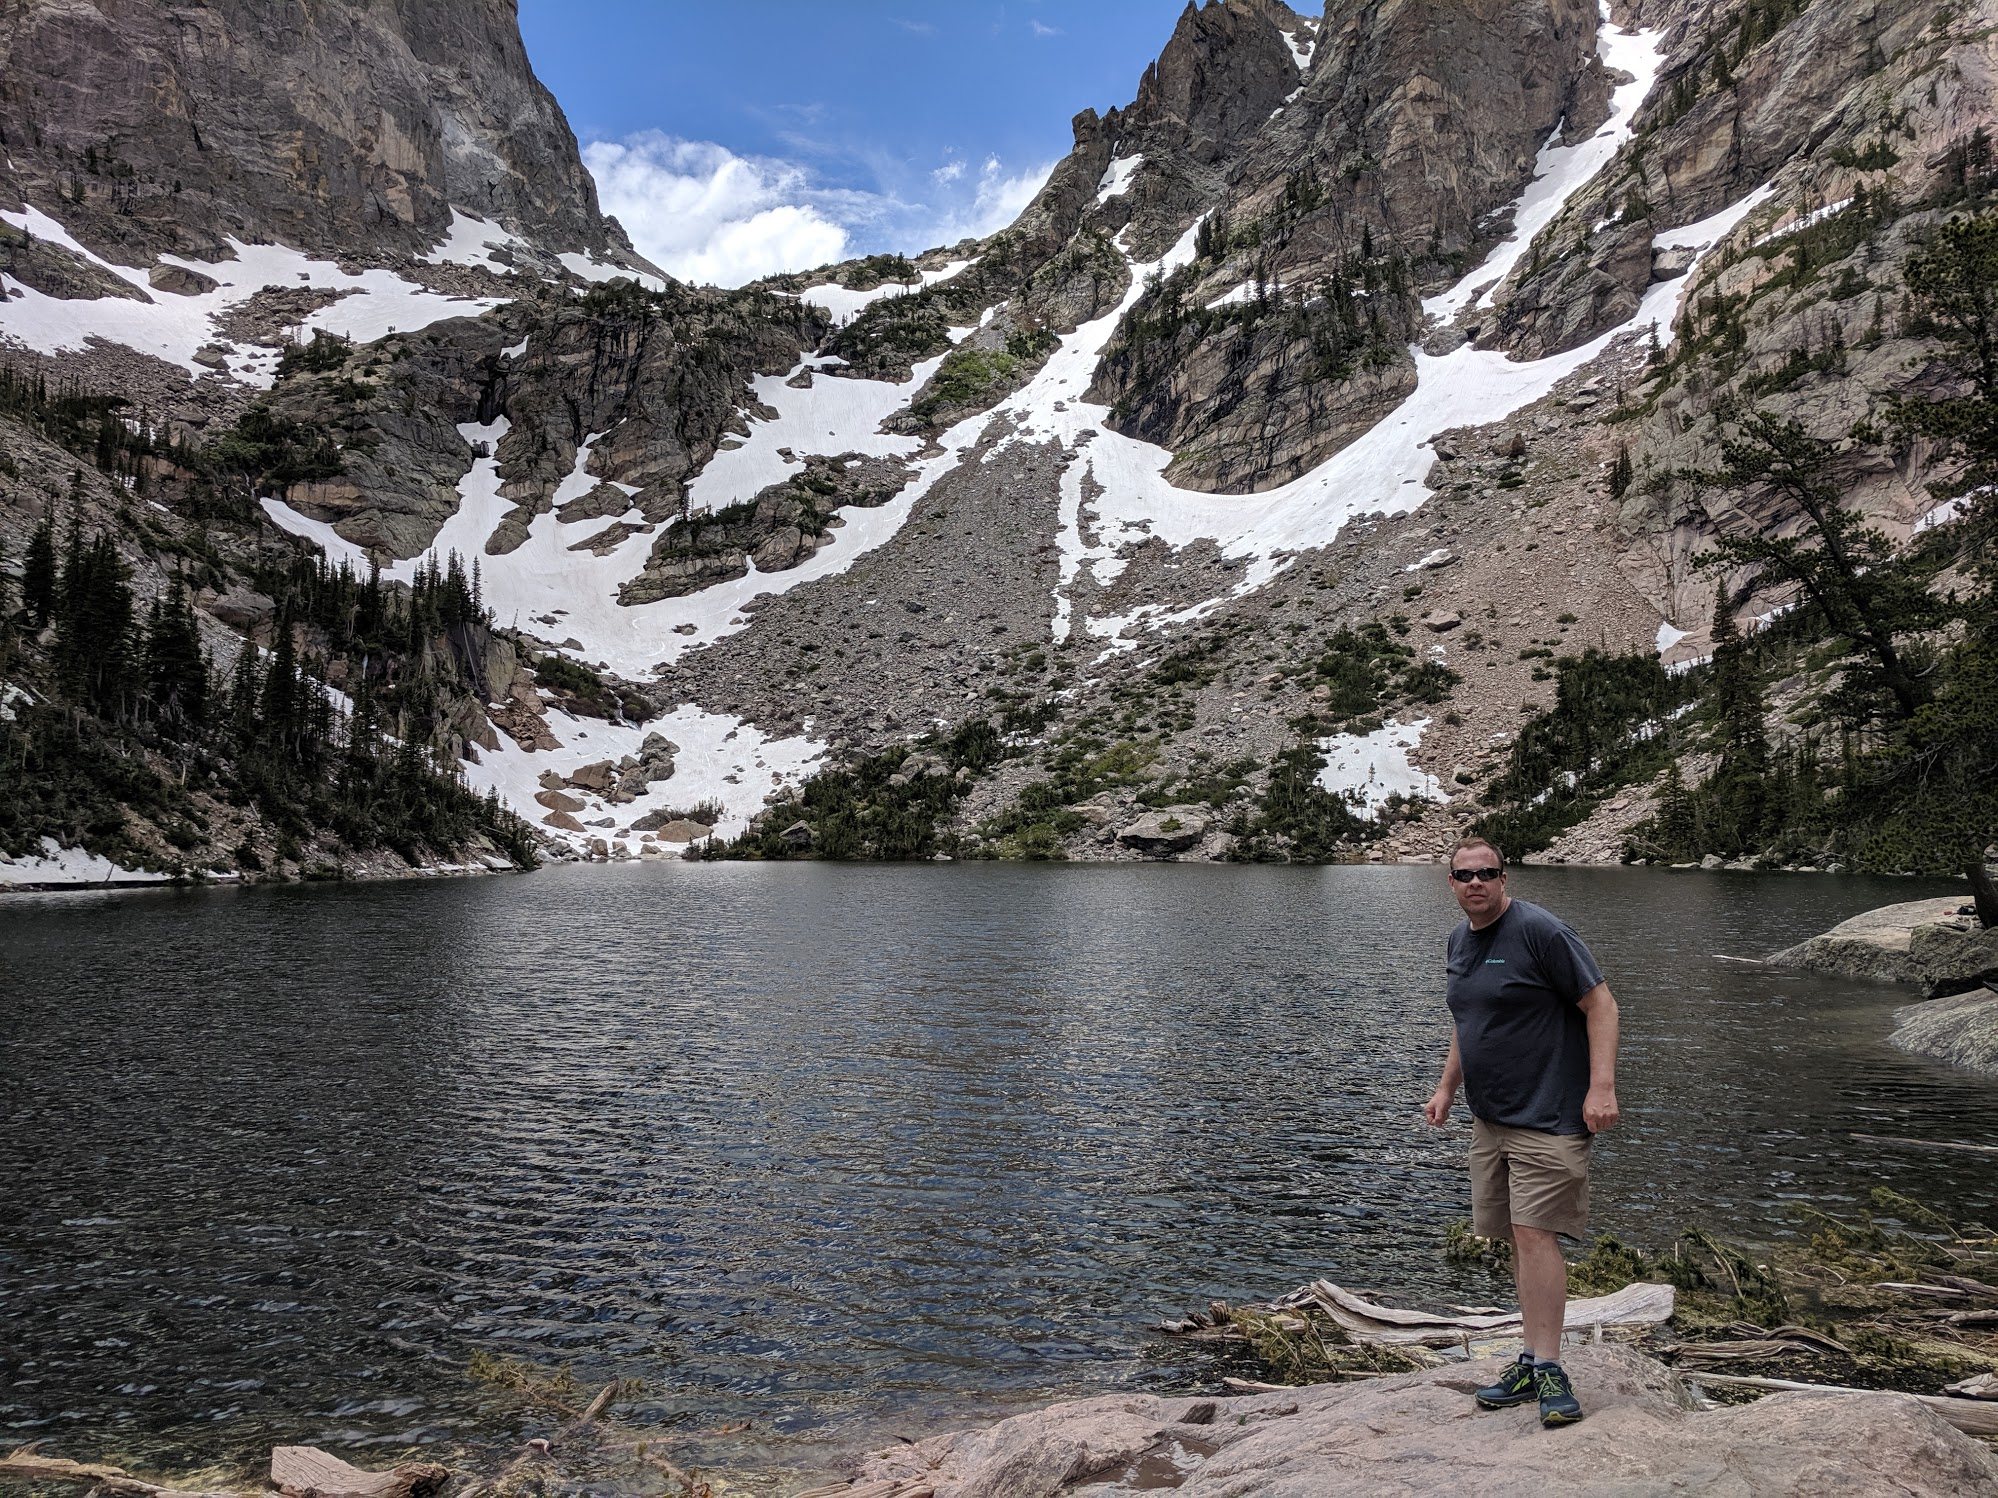 ThosPFuller on a hike in Colorado with a lake in the foreground and mountains in the background.